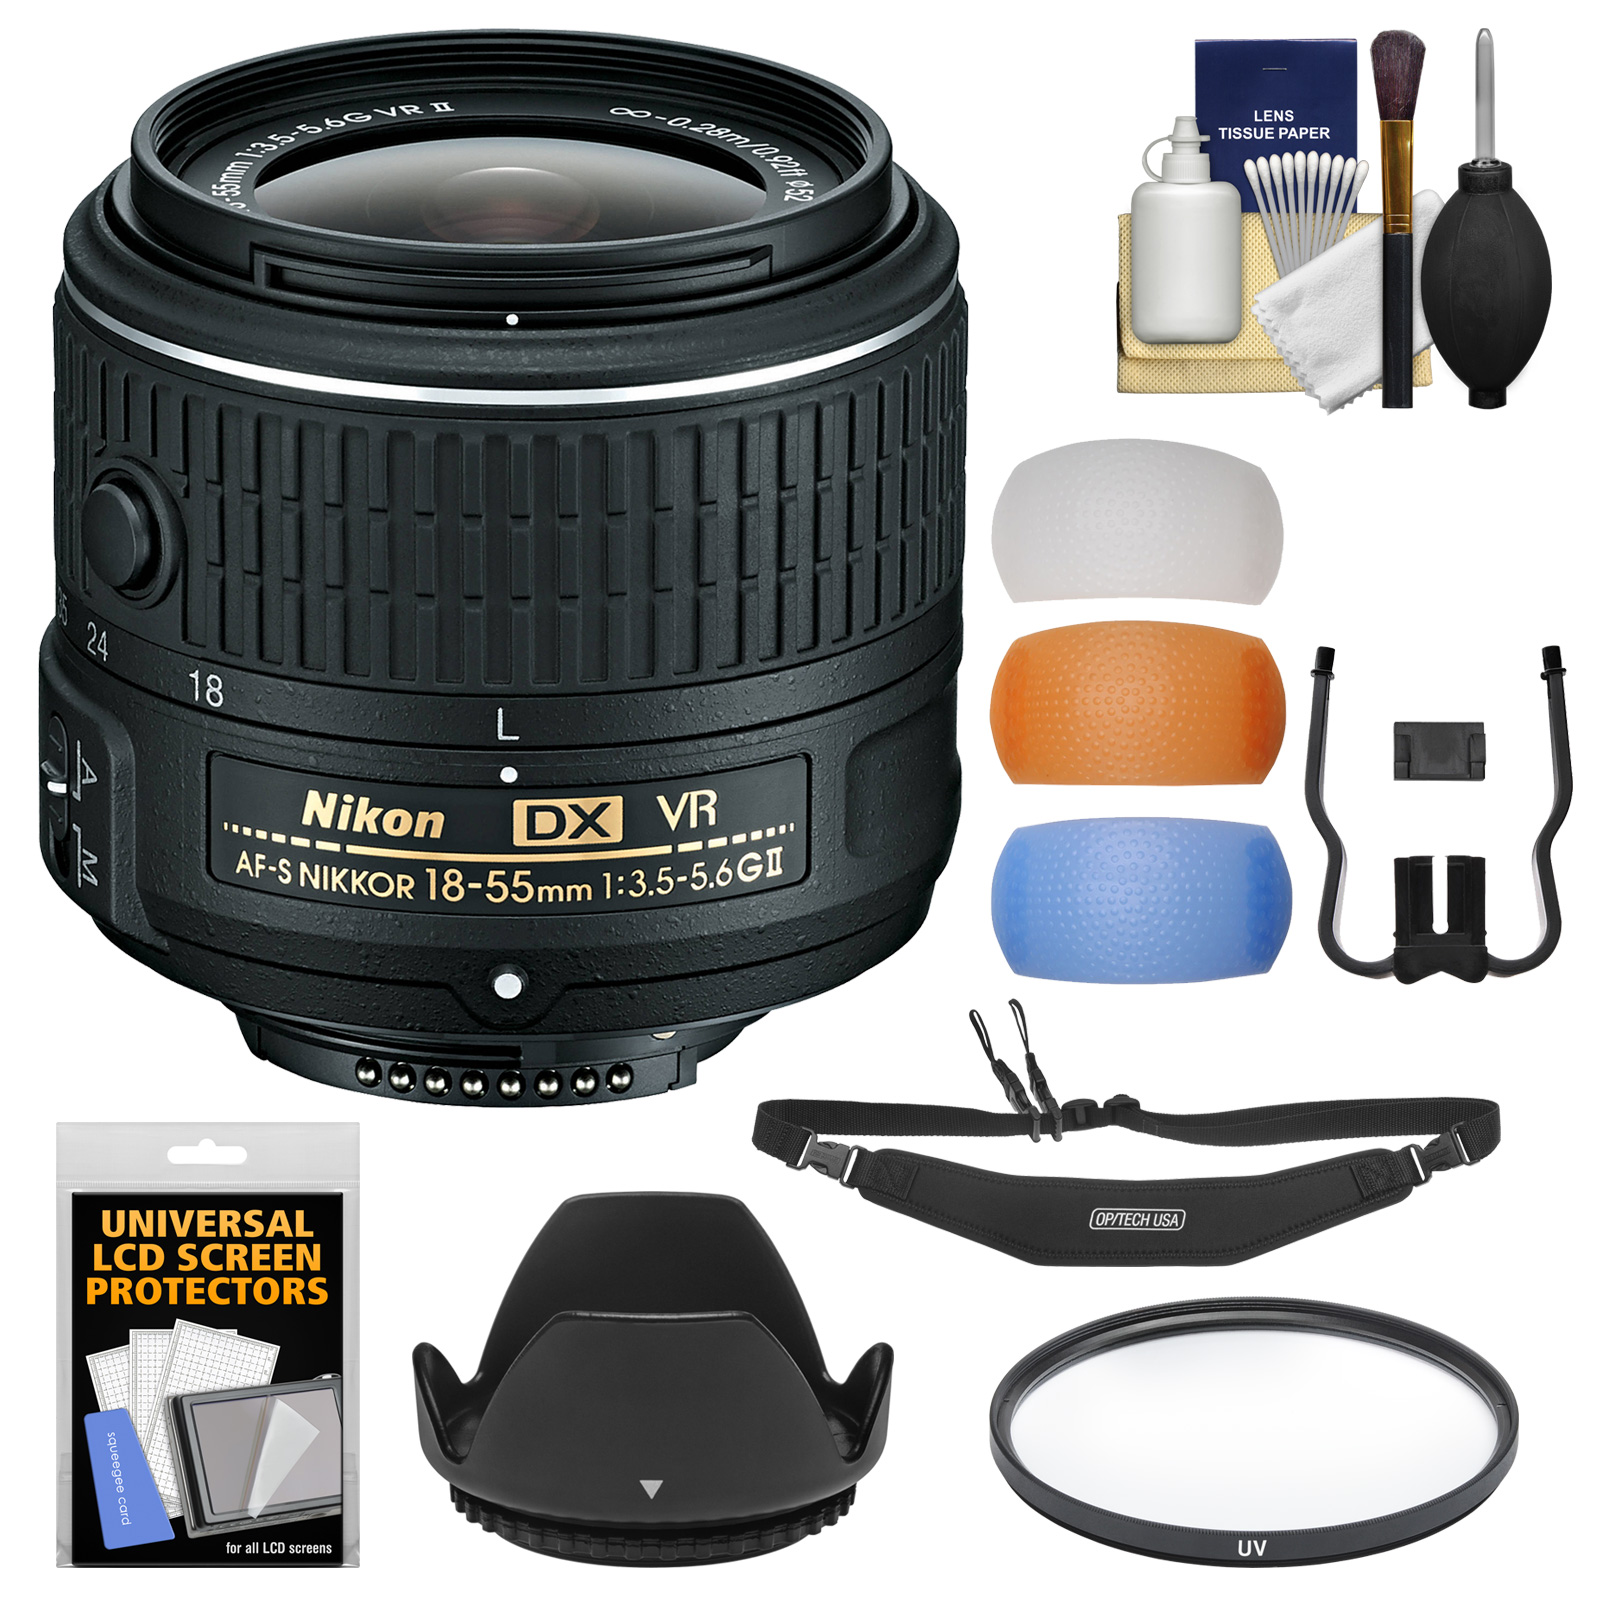 Nikon 18-55mm f/3.5-5.6G VR II DX AF-S Zoom-Nikkor Lens - Factory Refurbished with 3 Flash Diffusers + Filter + Hood + Strap + Kit